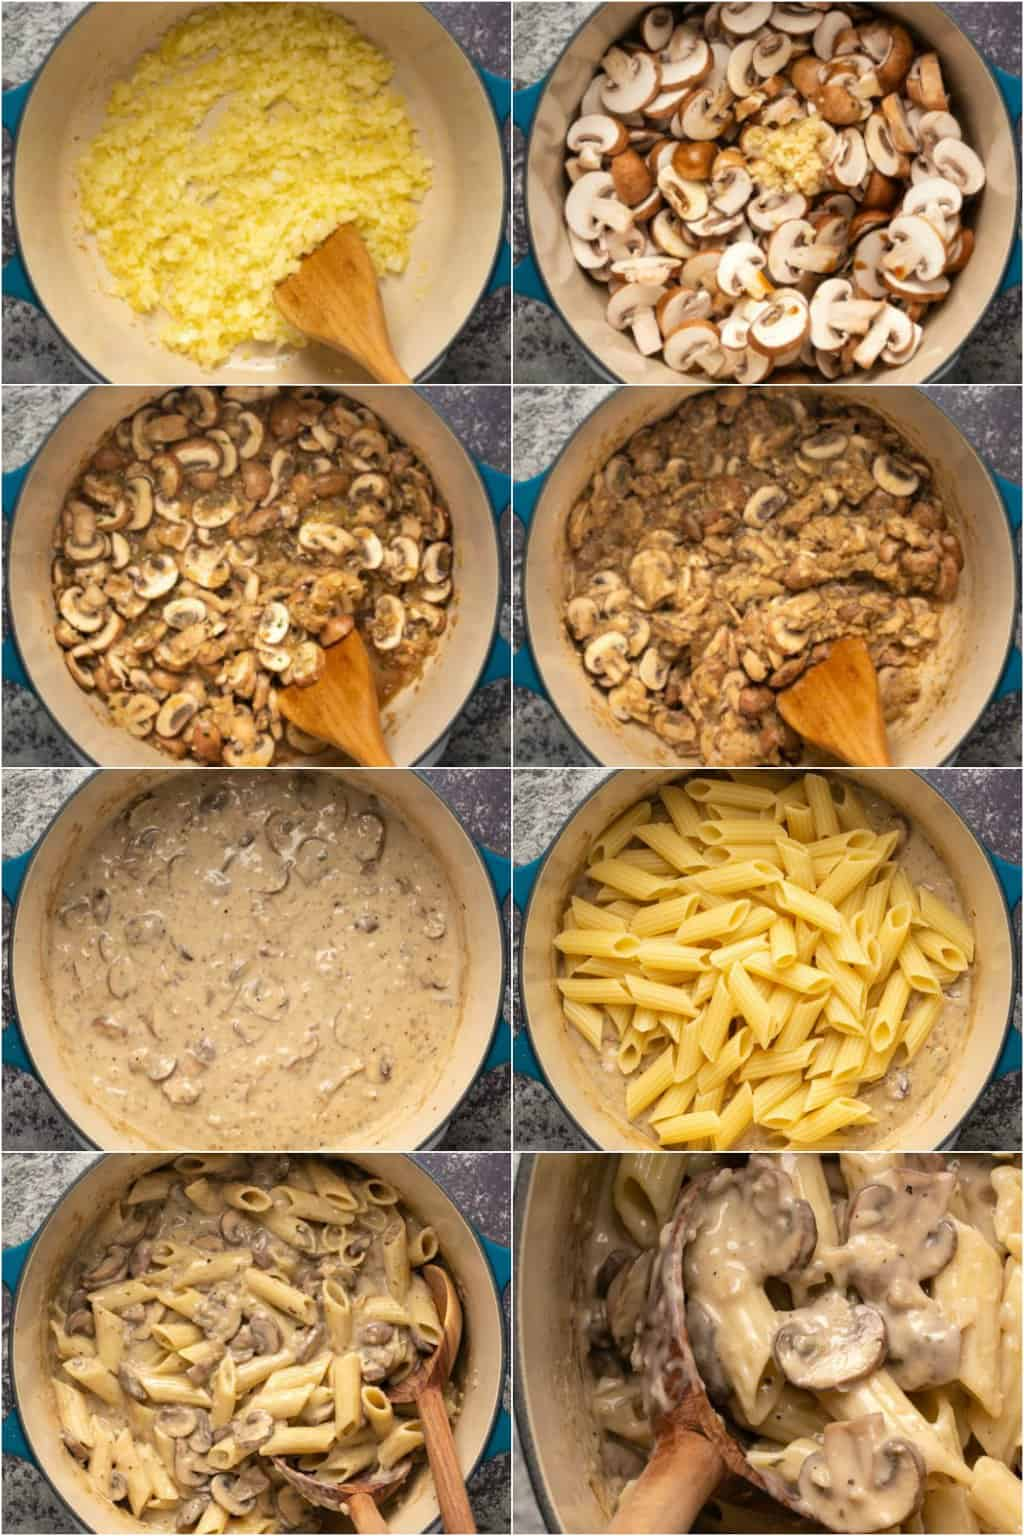 Step by step process photo collage of making vegan mushroom pasta.